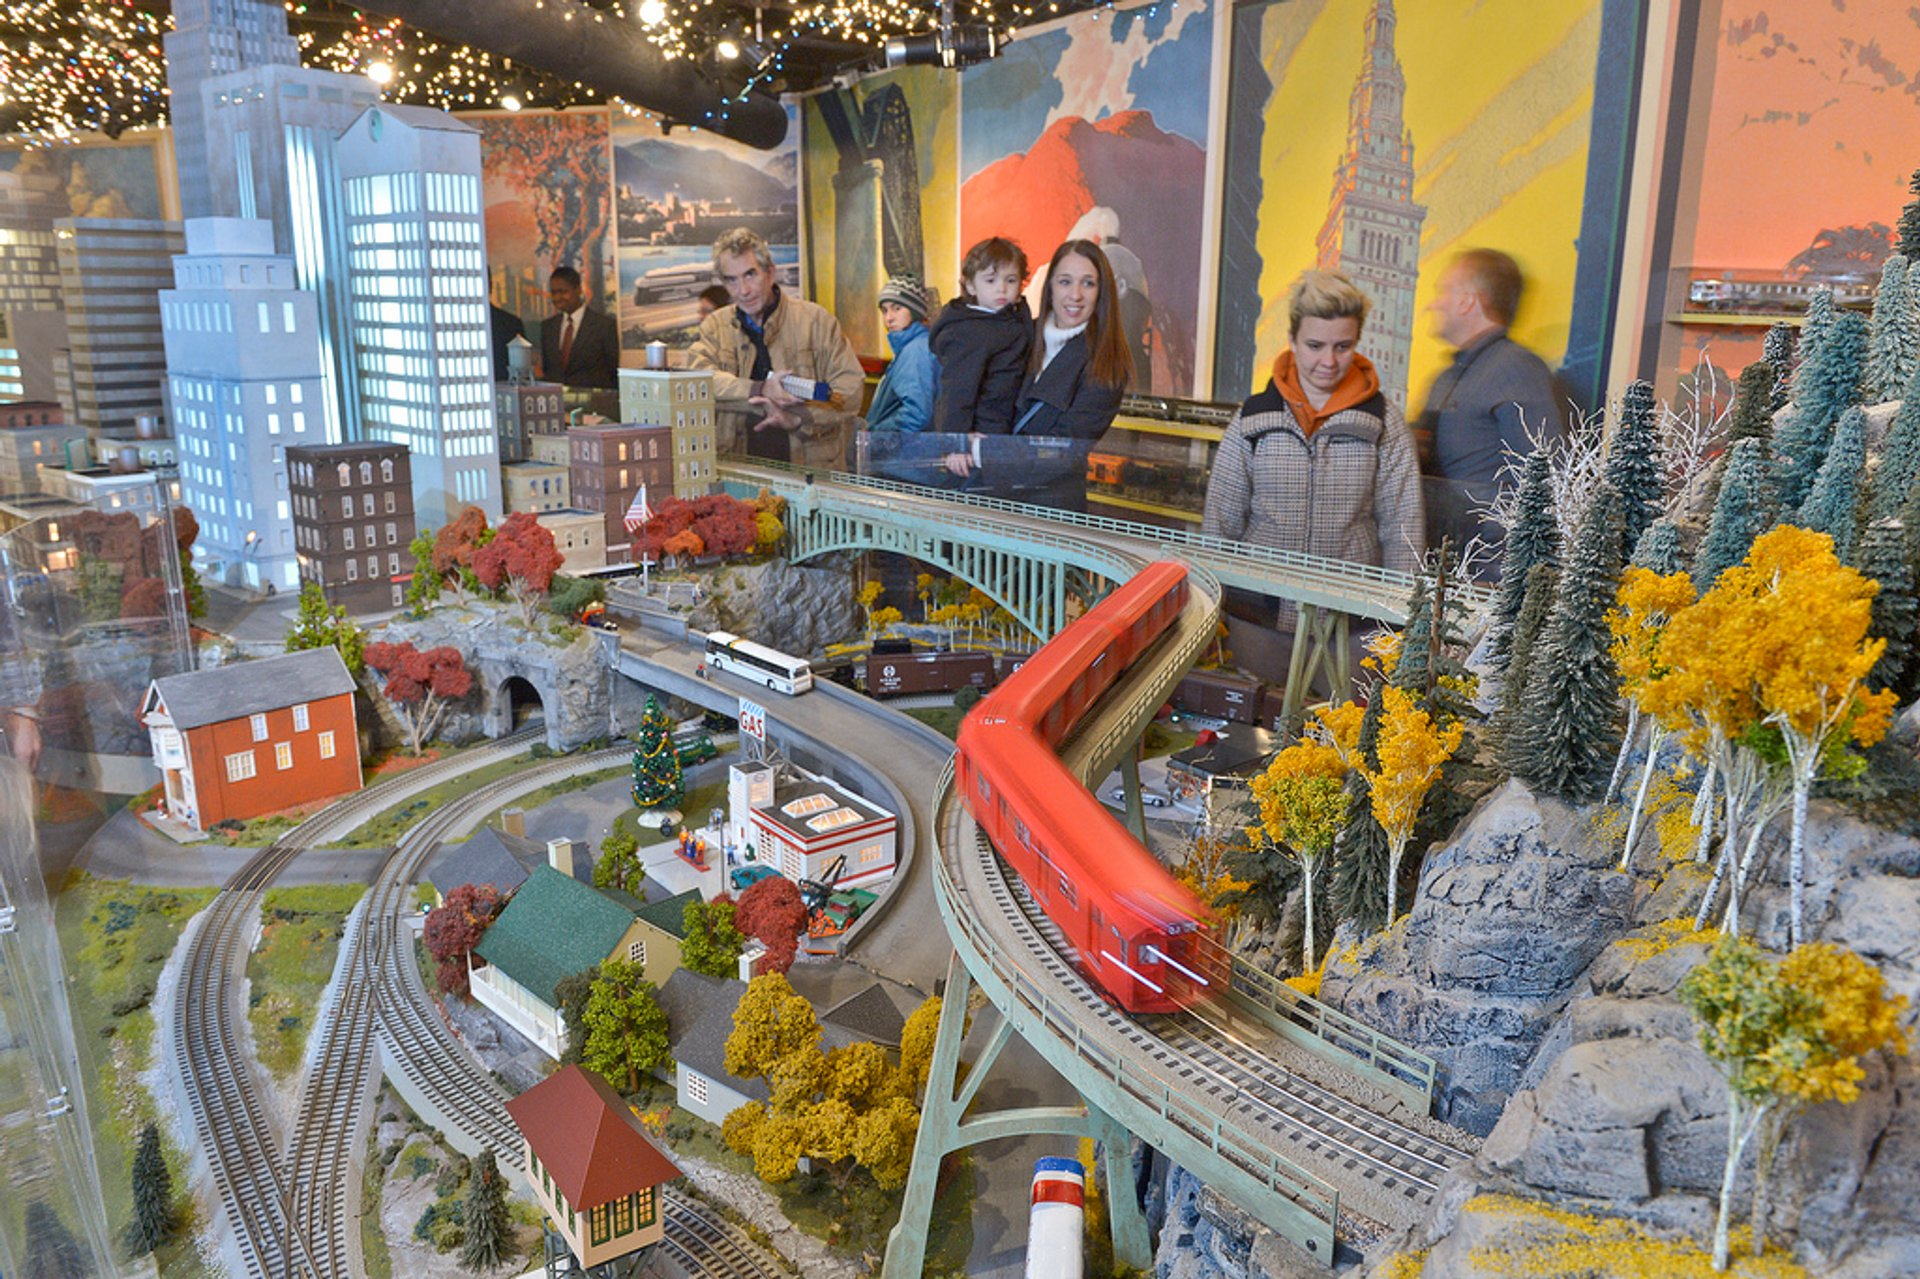 Holiday Train Show in New York - Best Season 2020